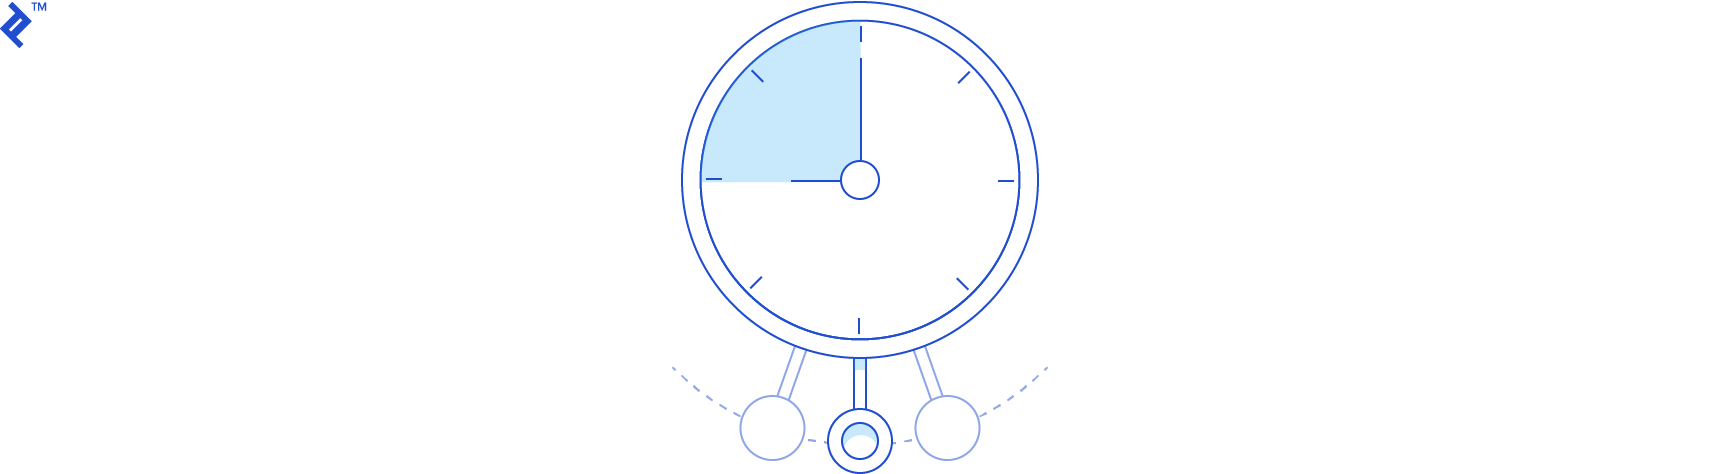 "Abstract diagram of a compass pointing towards the direction of ""business goals"""